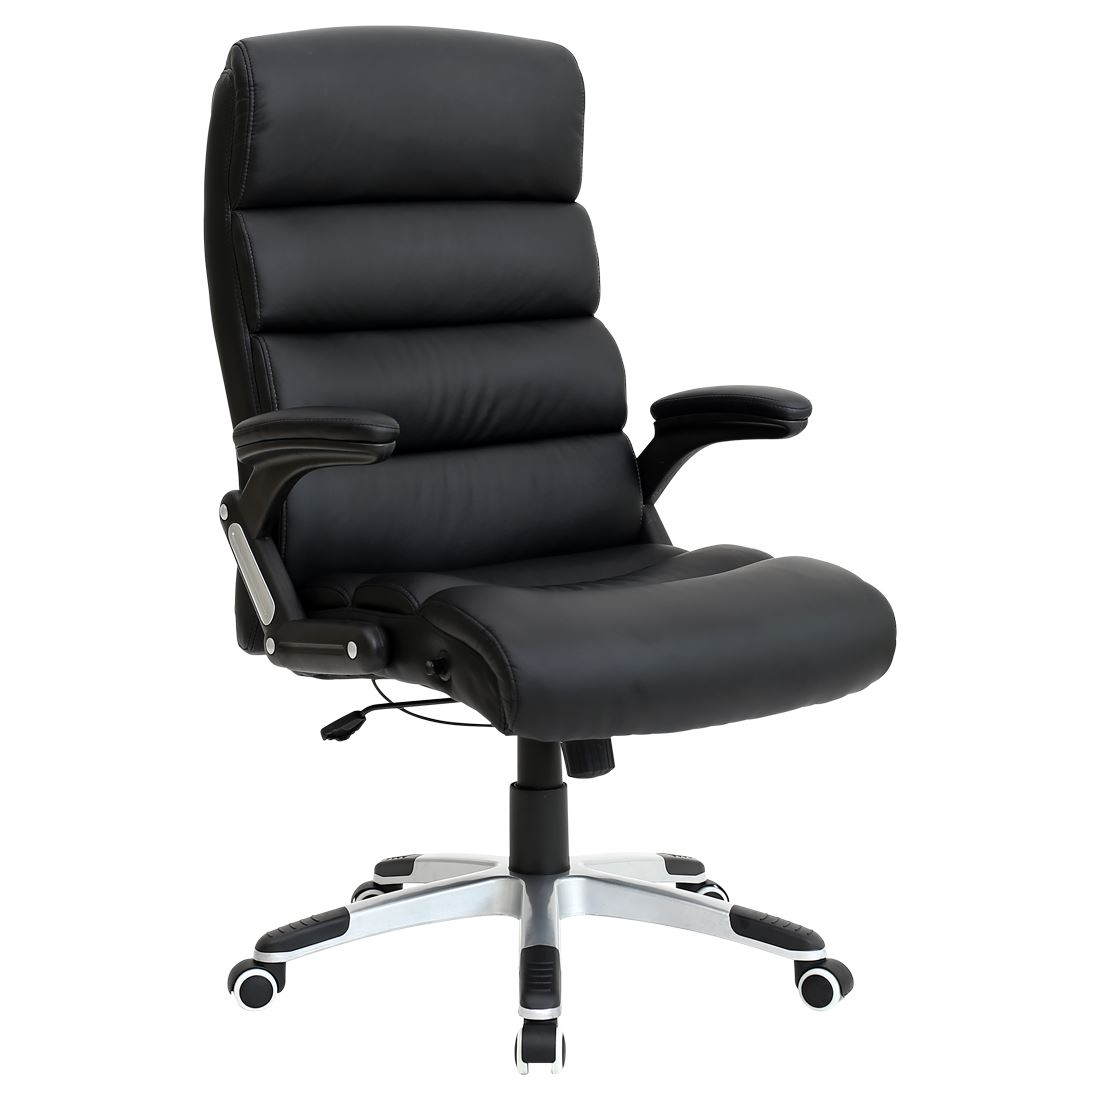 100 high back recliner chair recliner rocking chair reversi